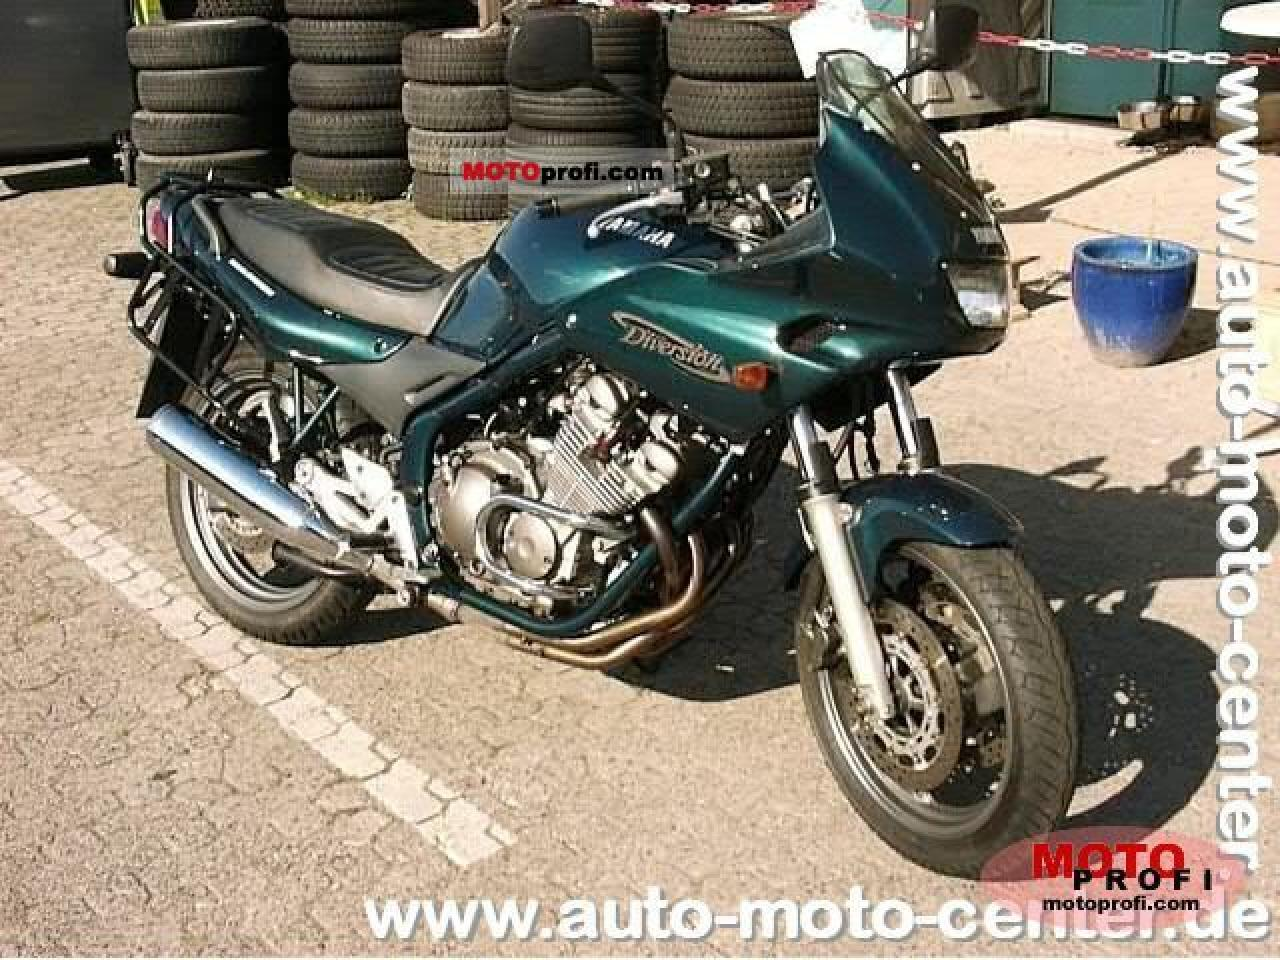 2003 yamaha xj 600 n diversion moto zombdrive com. Black Bedroom Furniture Sets. Home Design Ideas